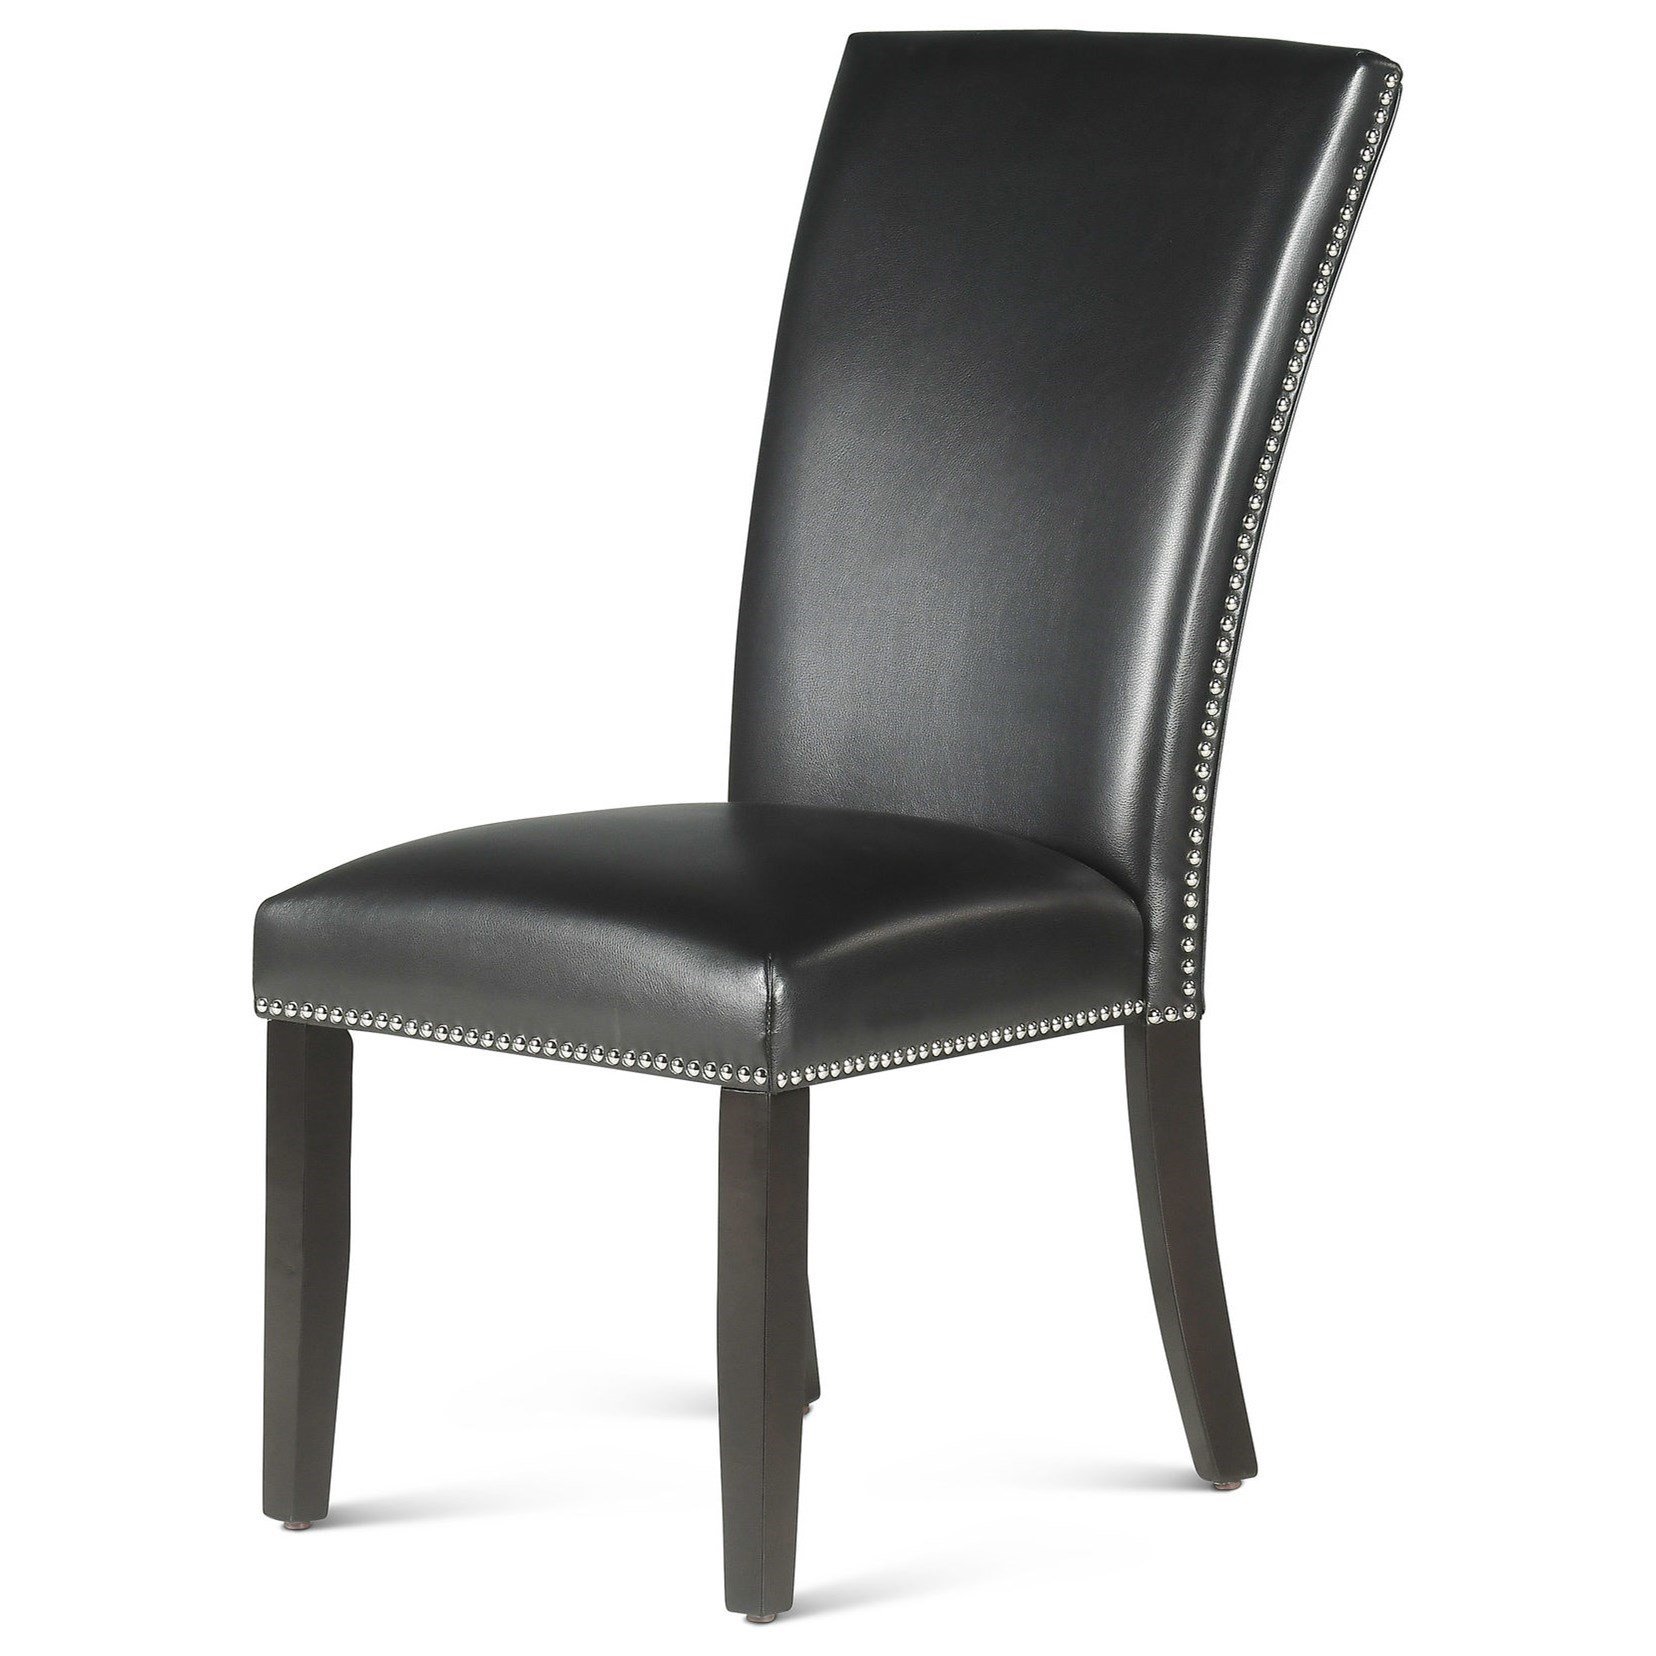 Finley Dining Side Chair by Steve Silver at Walker's Furniture